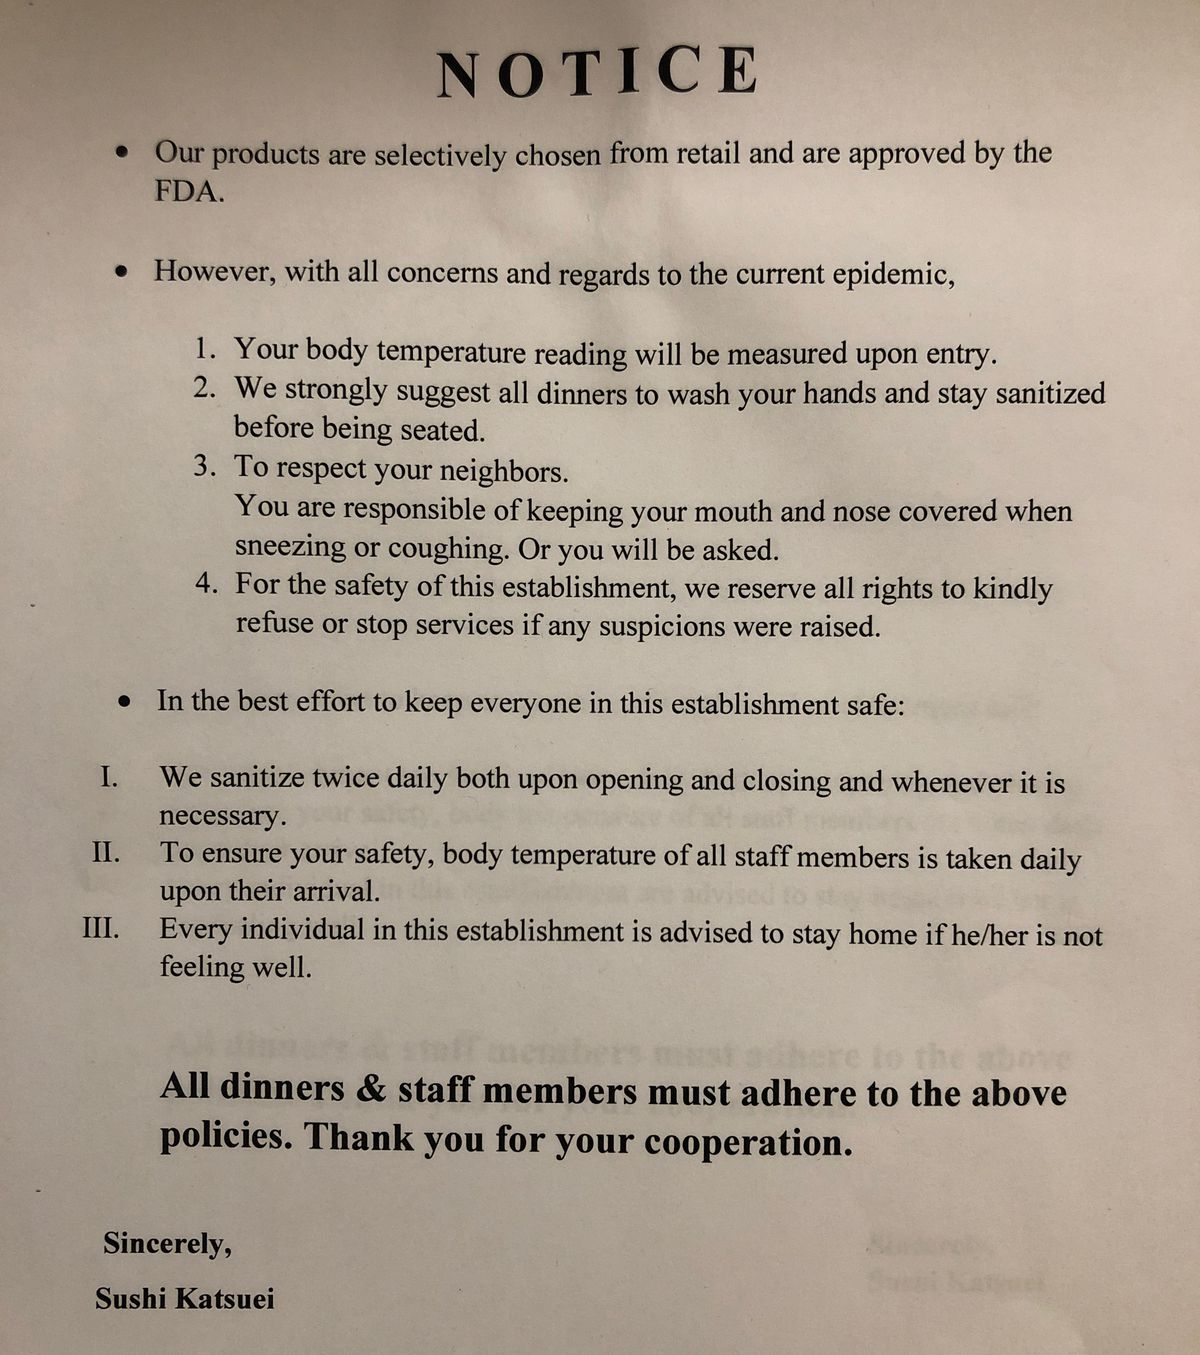 A photograph of a warning notice in a bathroom, detailing the cleaning habits of the staff and customers at a restaurant